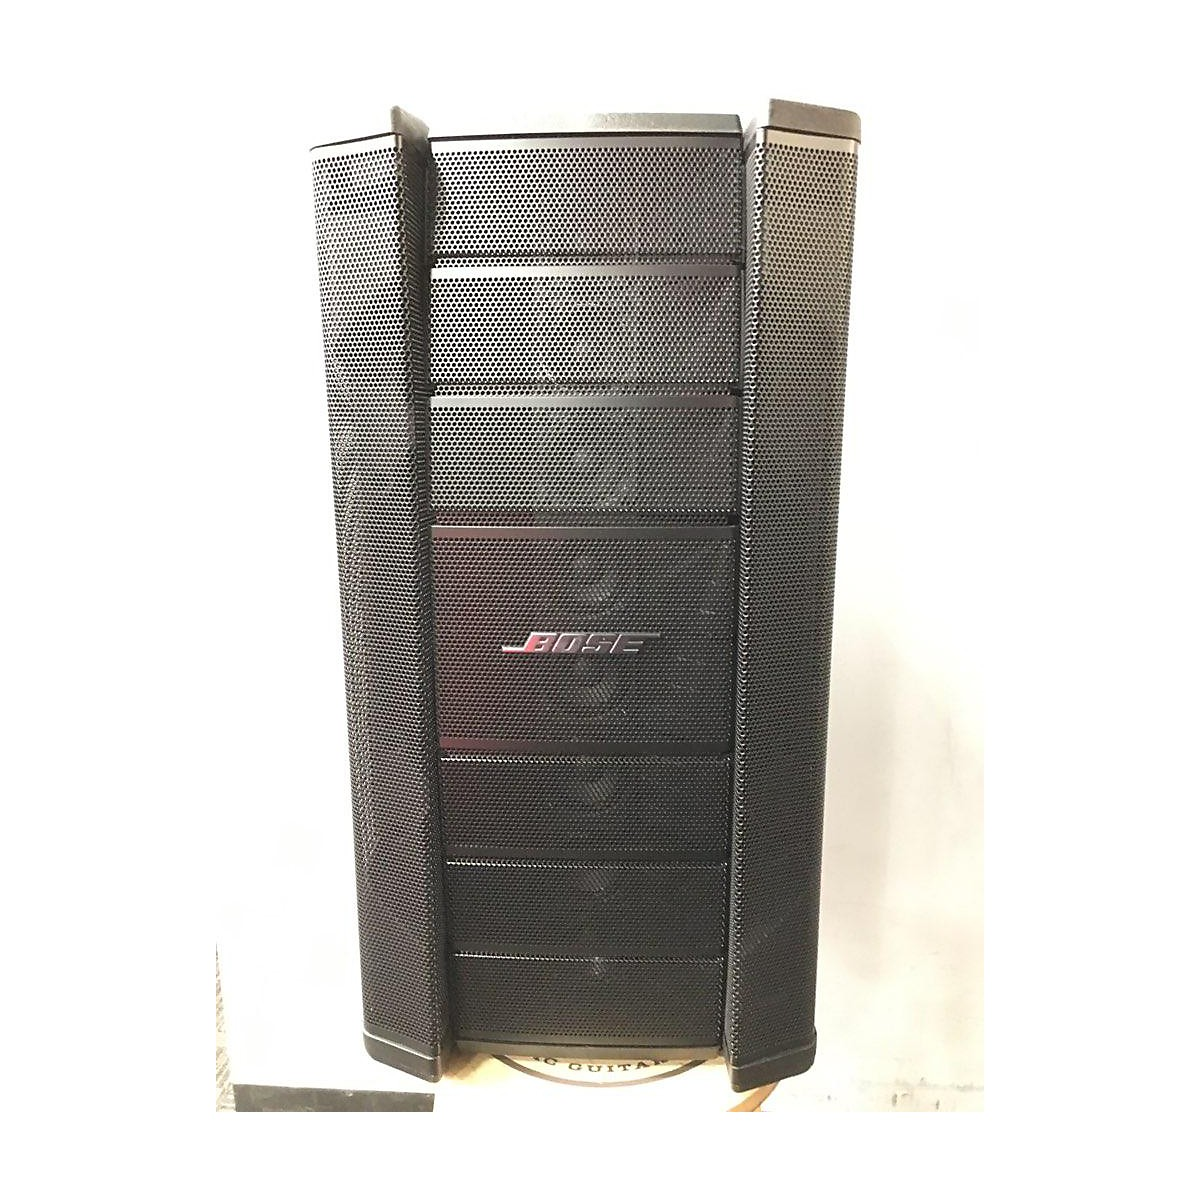 Bose F1 Model 812 Line Array Speaker System AND F1 Powered Subwoofer Powered Speaker